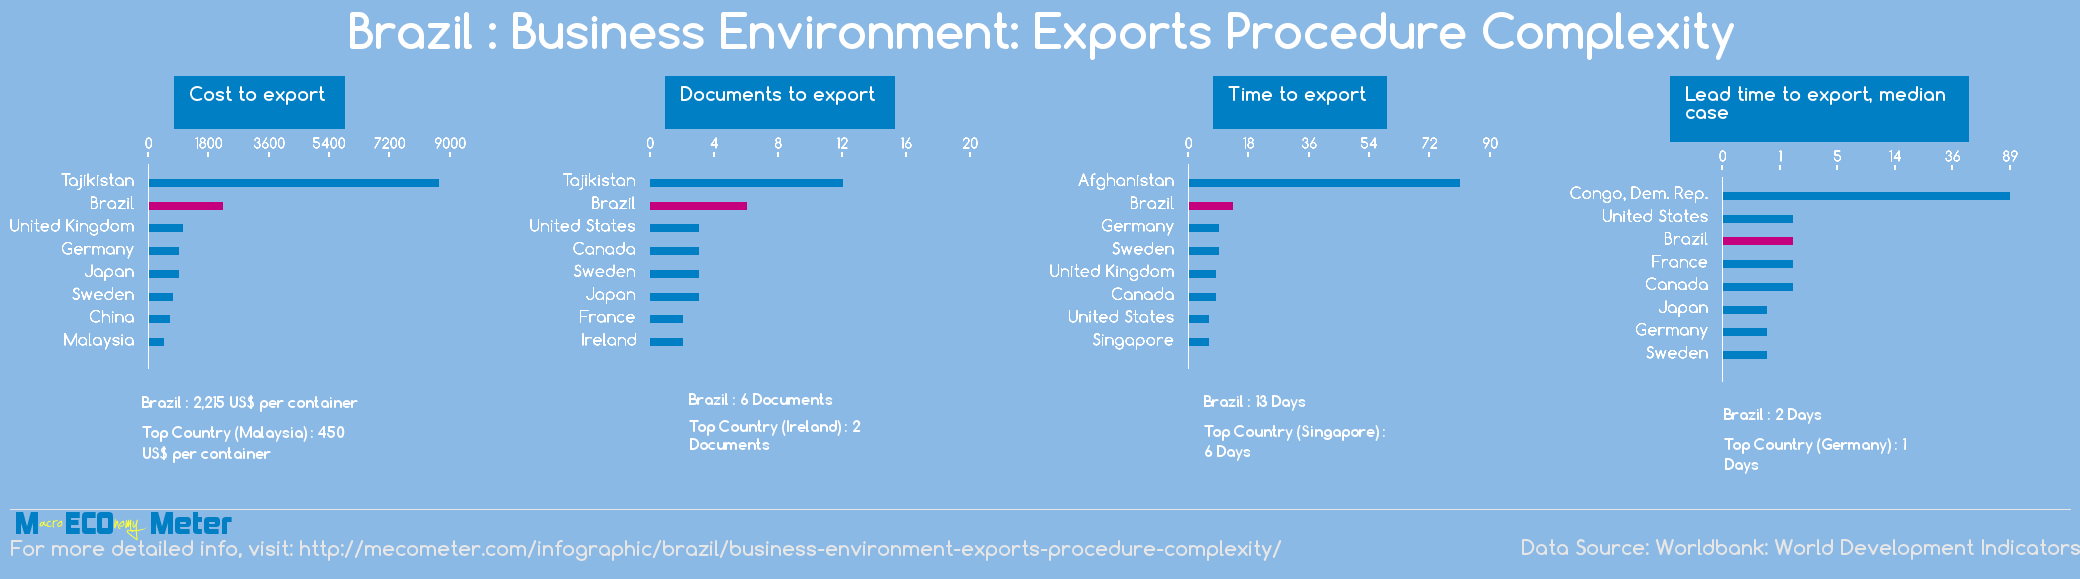 Brazil : Business Environment: Exports Procedure Complexity